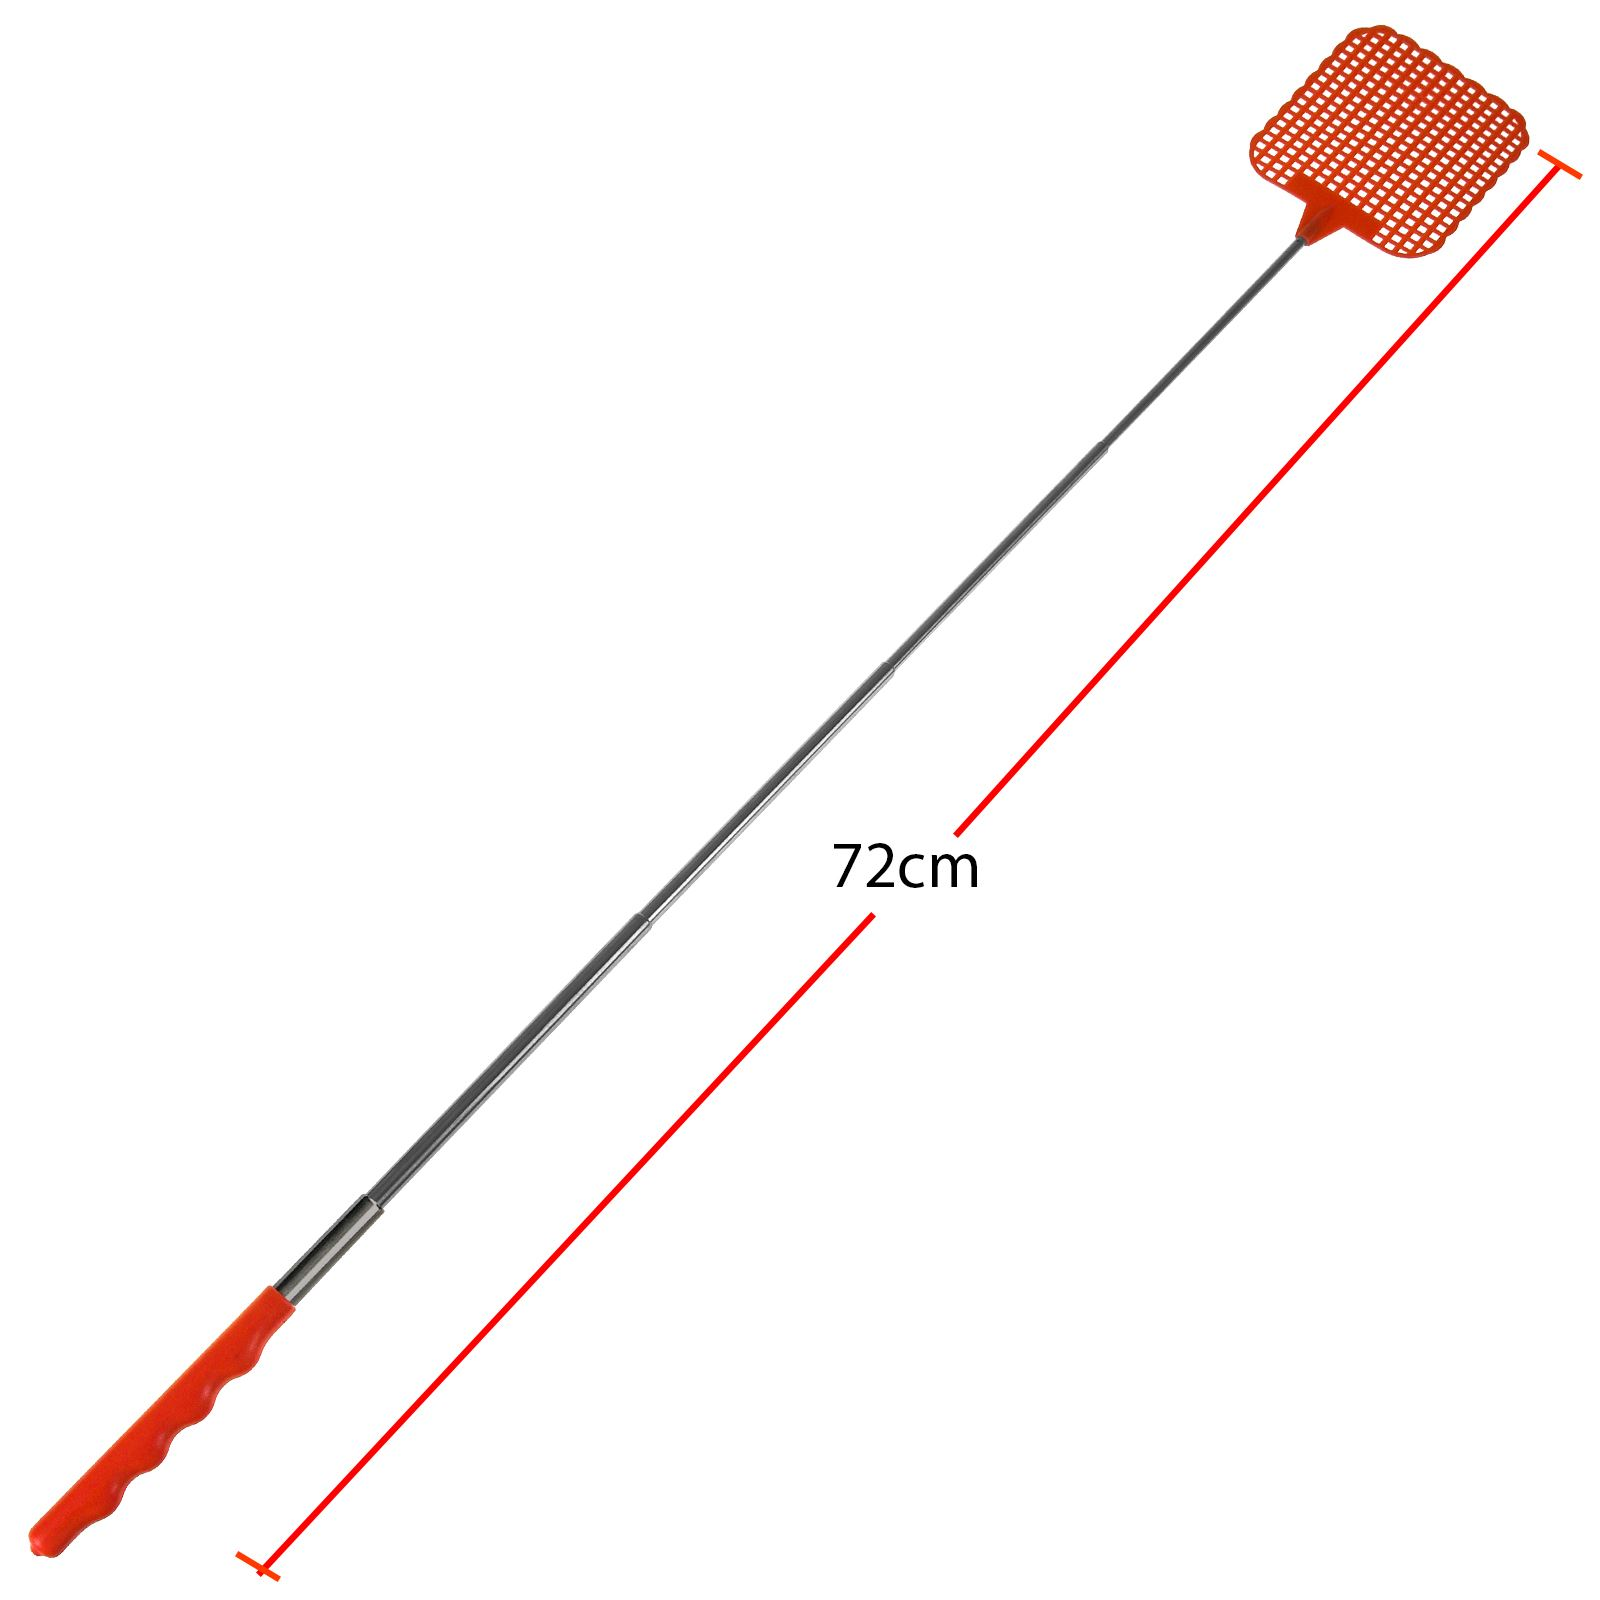 Telescopic Fly Swatter Extendible Insect Killer Wasp Mosquito Bug Zapper Circuit